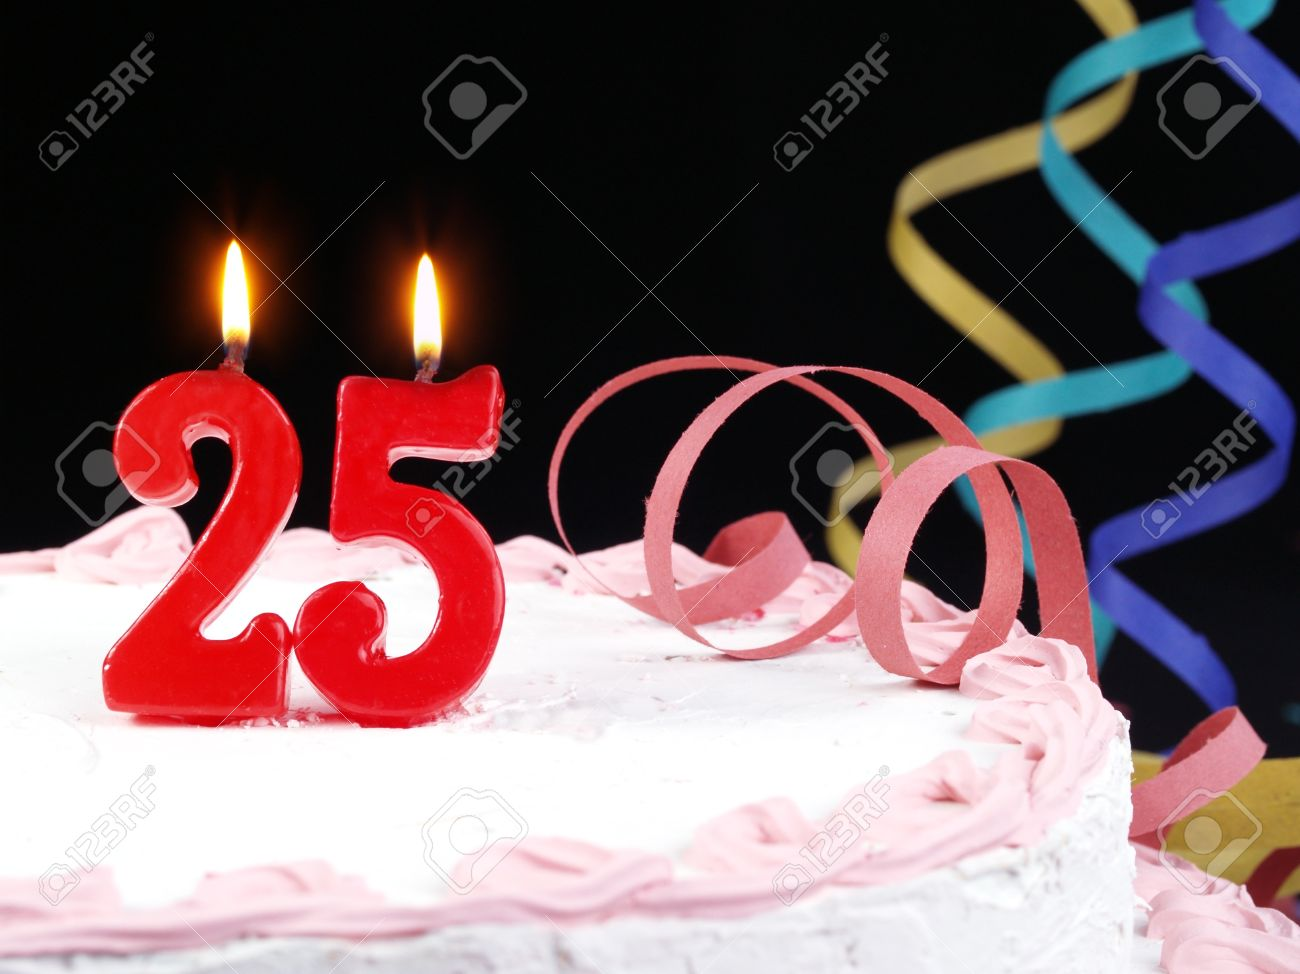 Birthday Cake With Red Candles Showing Nr 25 Stock Photo